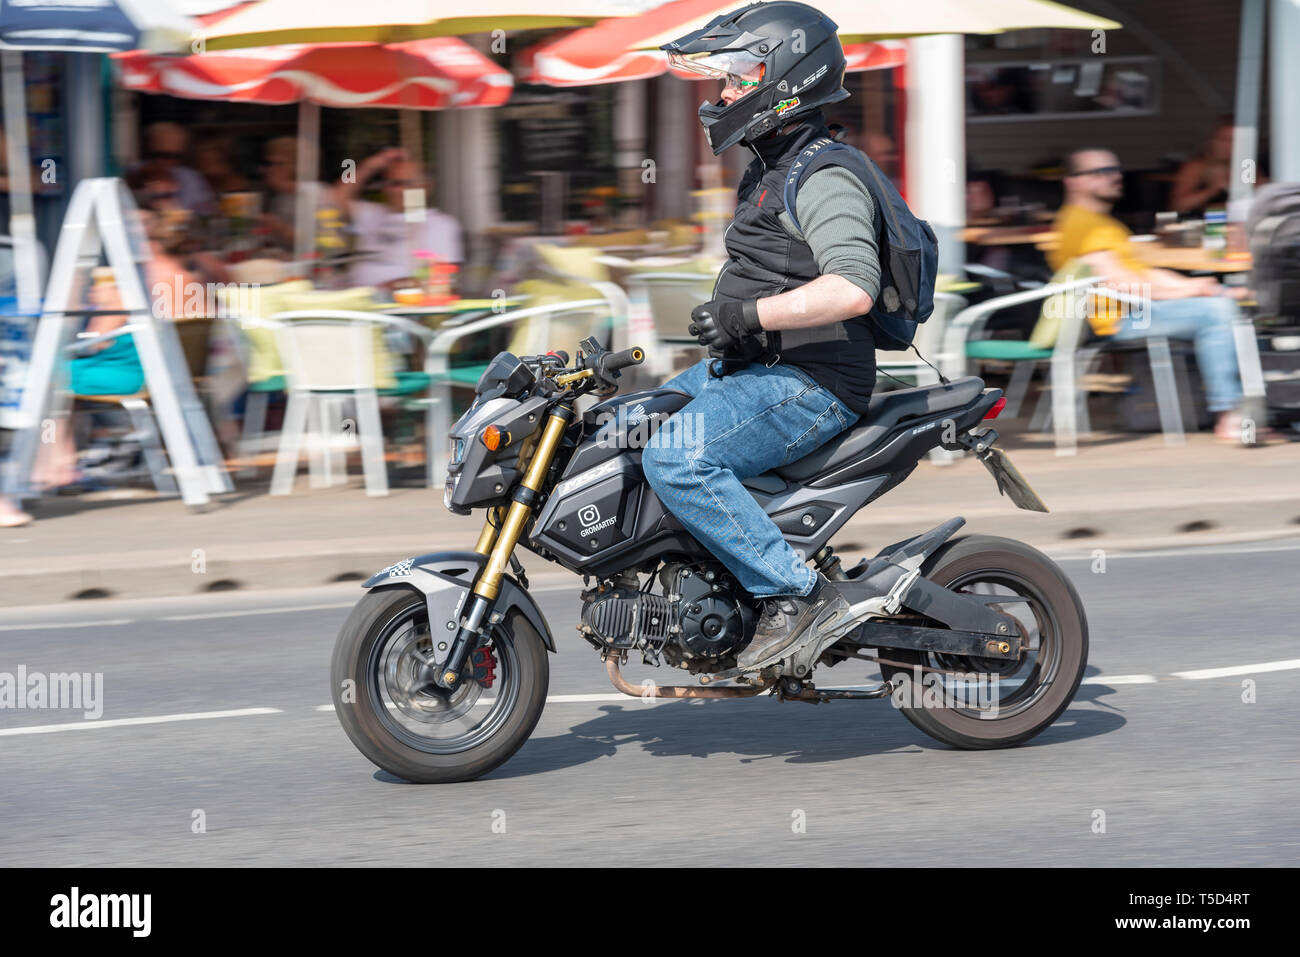 Grom Stock Photos & Grom Stock Images - Alamy